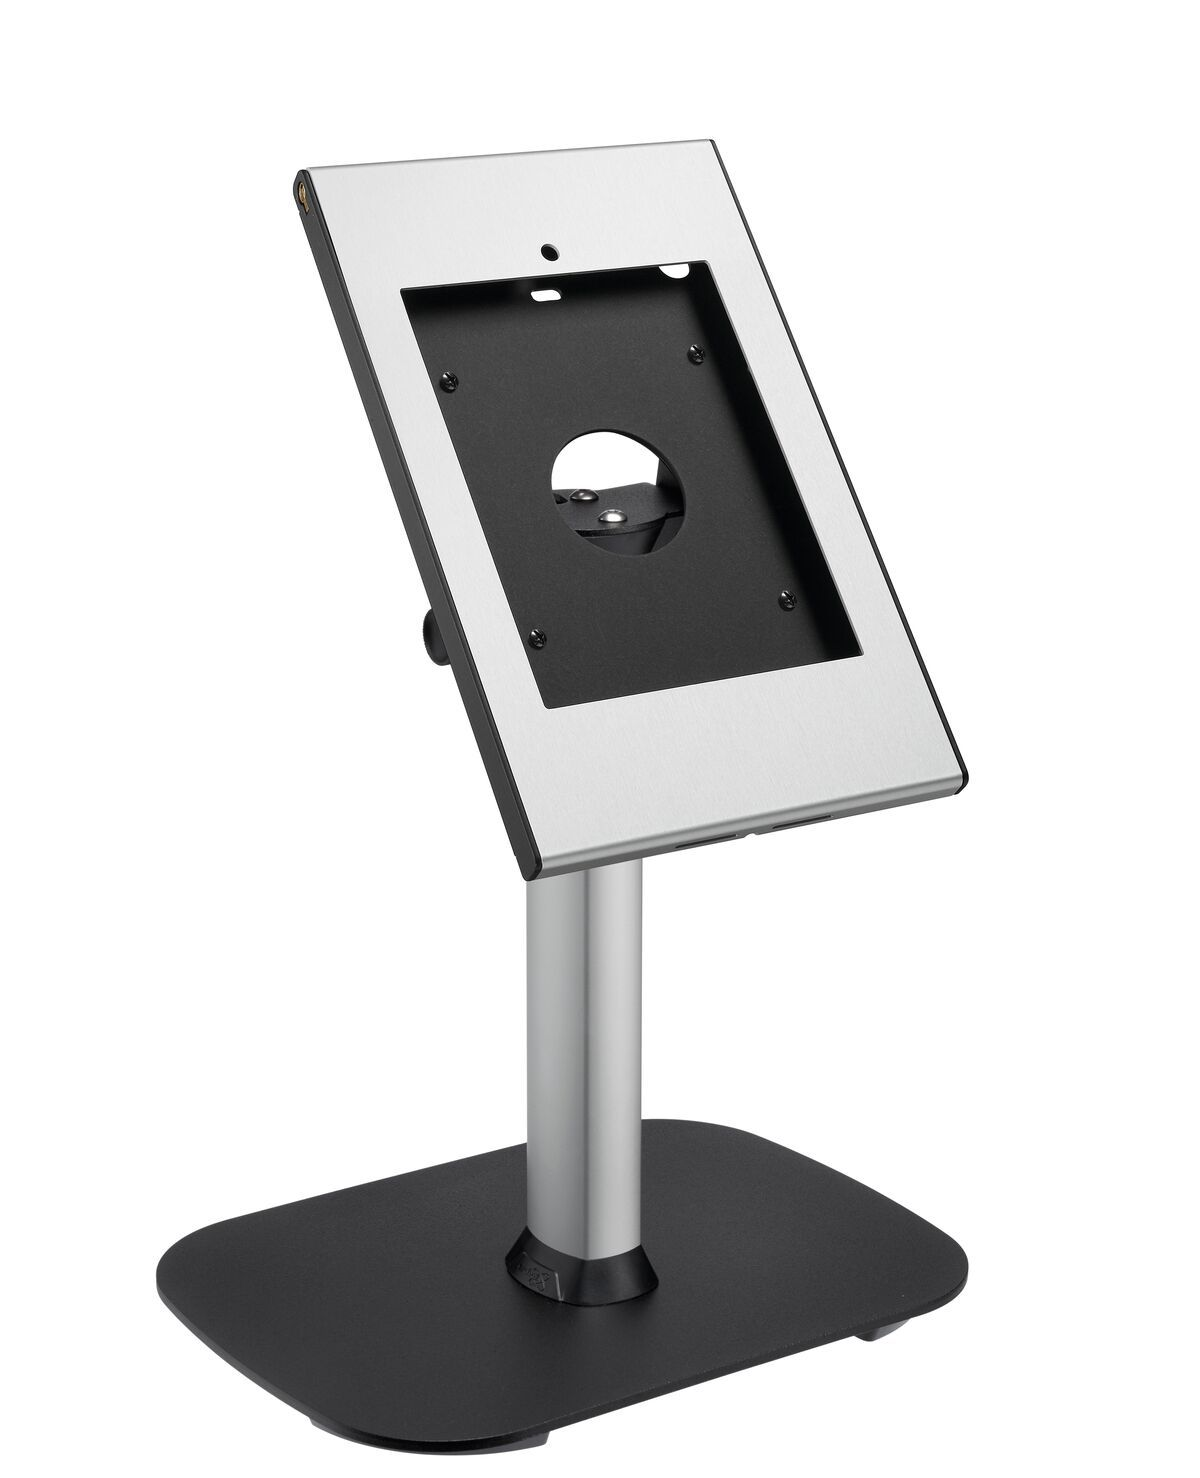 Vogel's PTS 1226 TabLock per iPad mini (2019) - Application